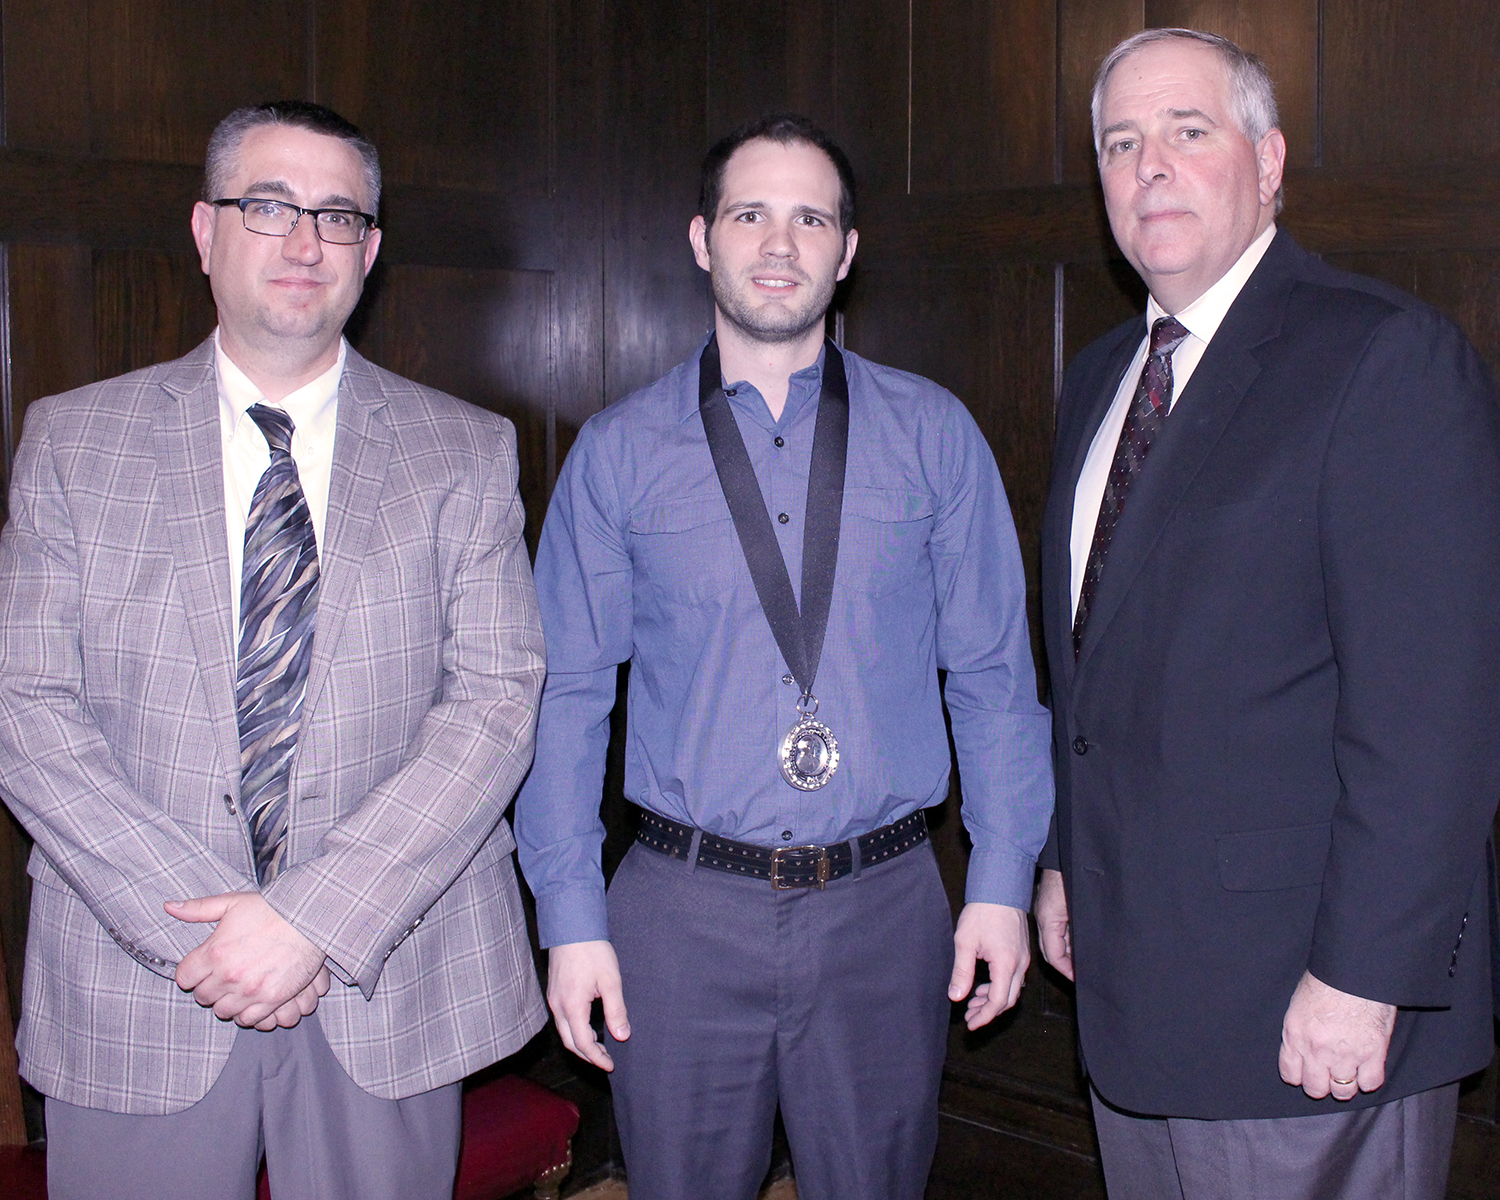 Pictured from left to right: Dean of Robotics & Manufacturing E.J. Daigle, Micah Thorson and College President Rich Wagner